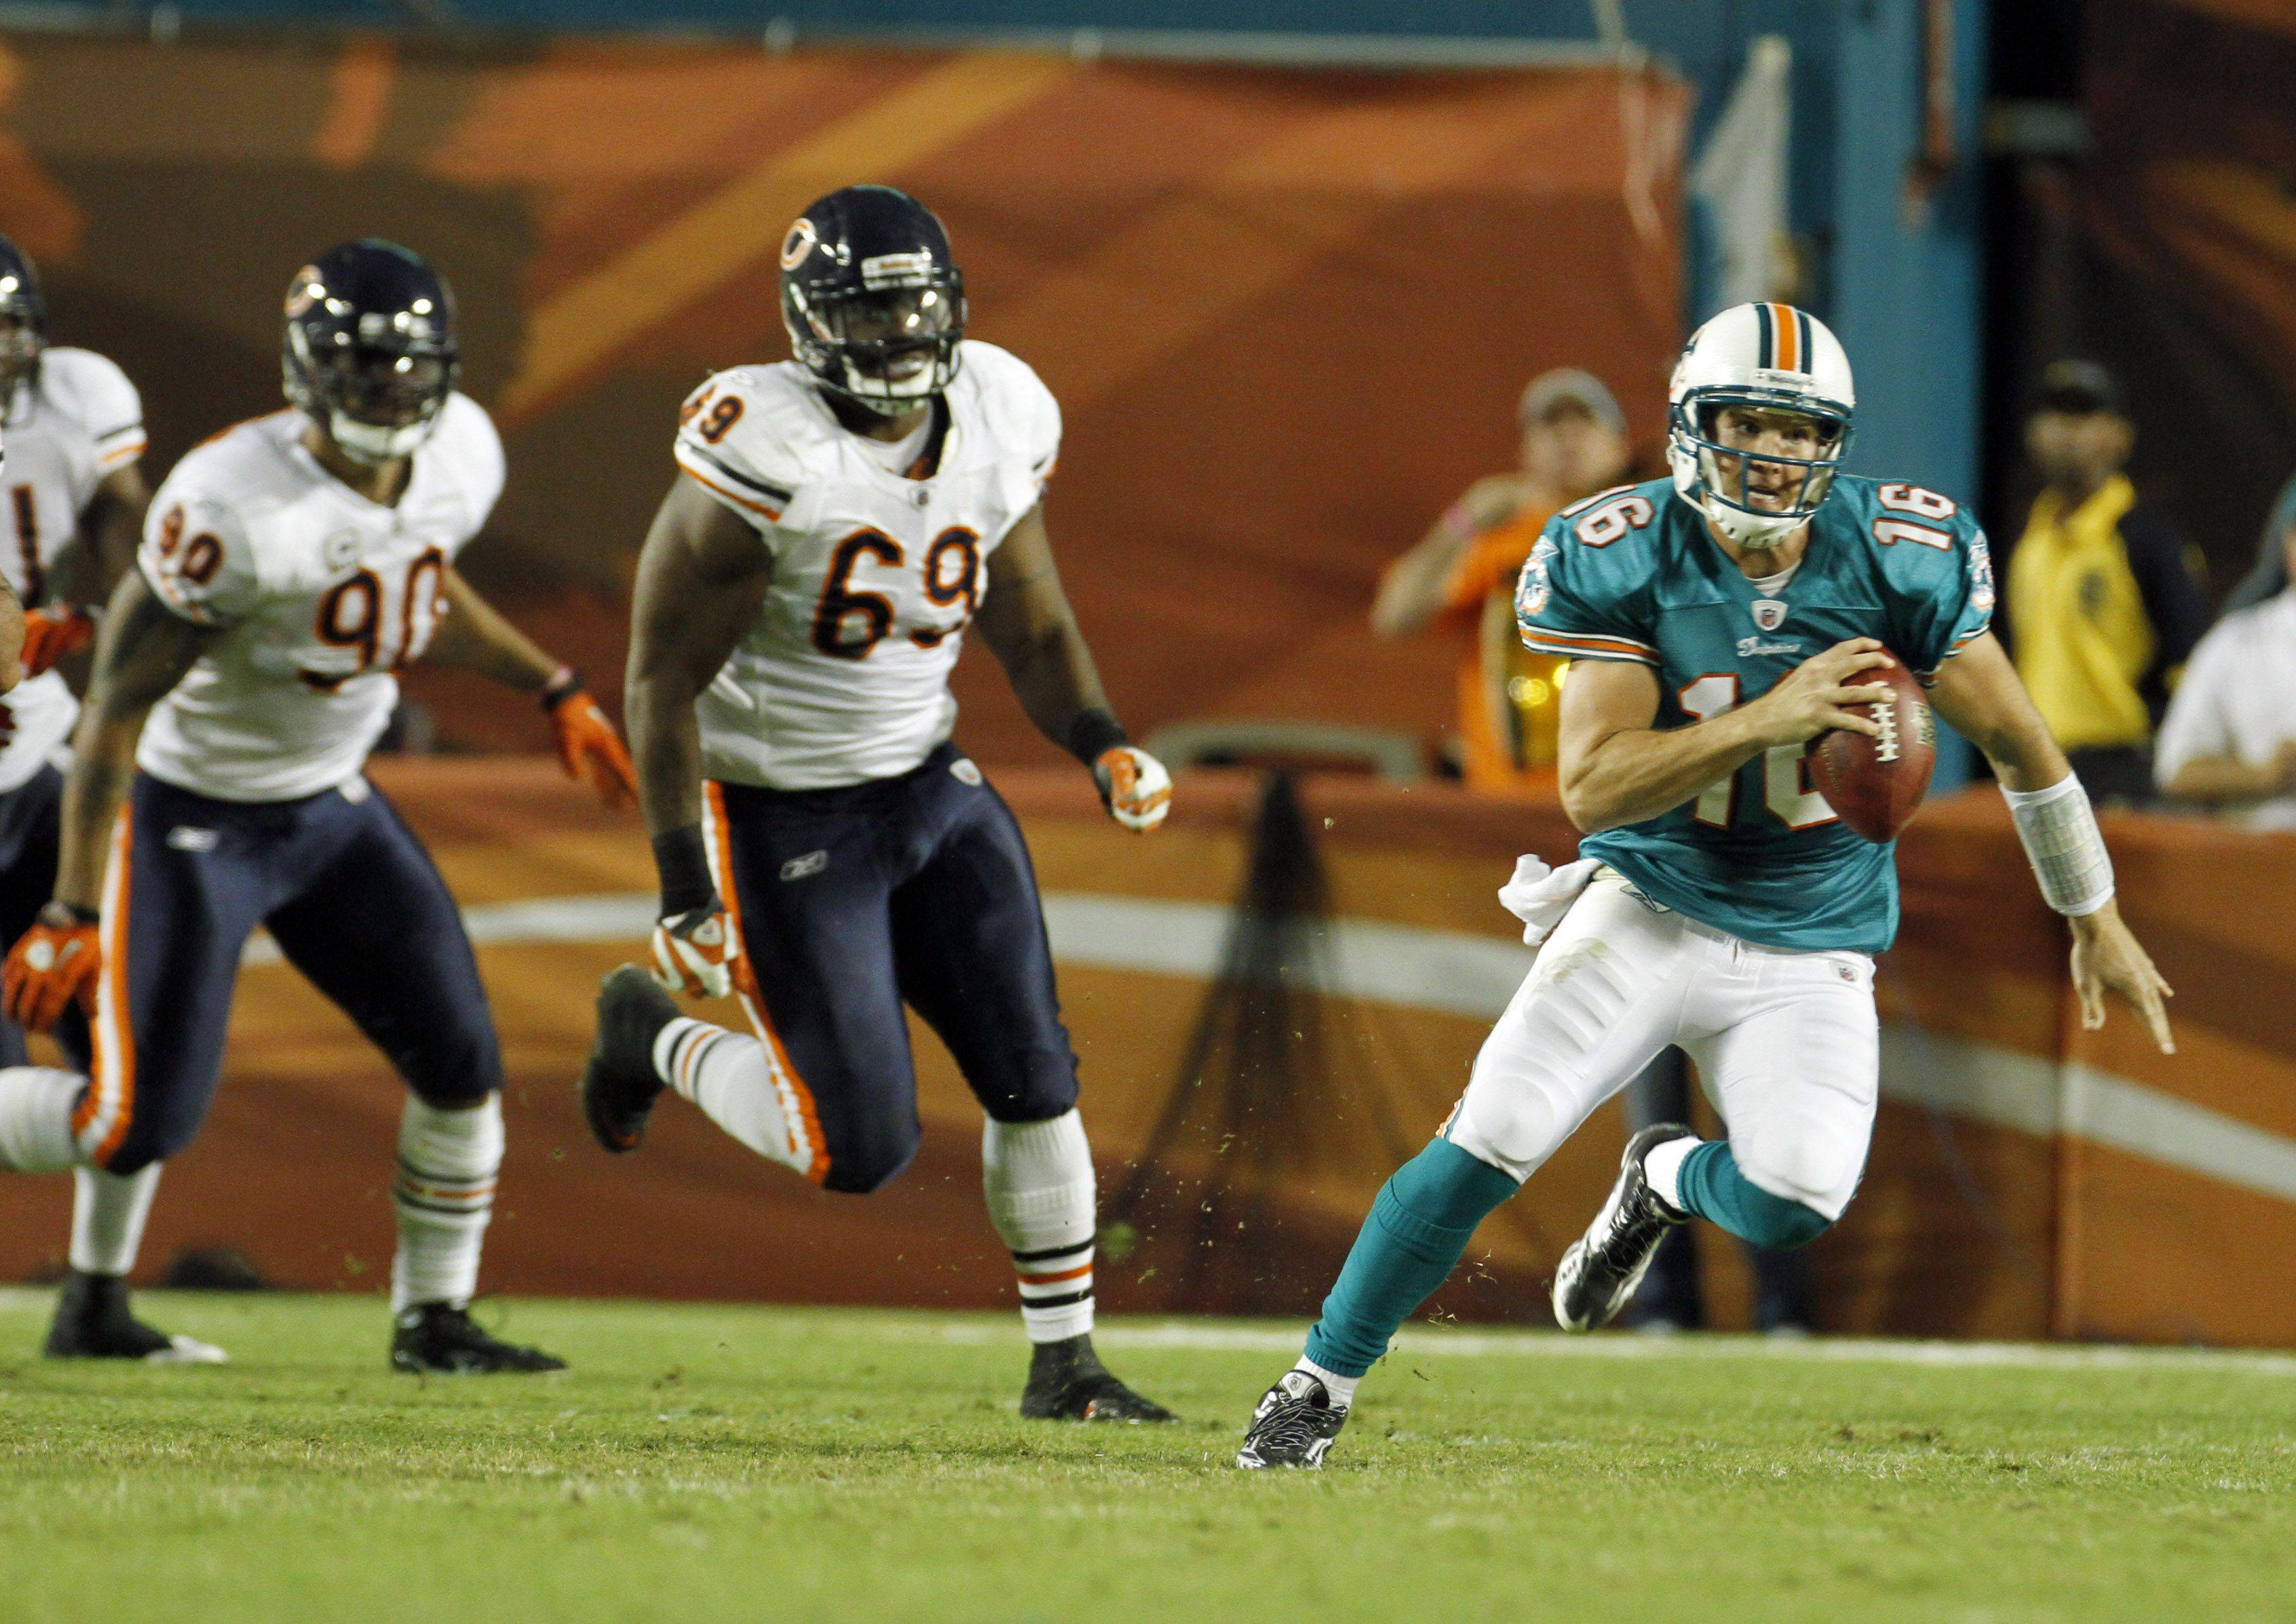 The Bears' Julius Peppers (90) and Henry Melton chase Dolphins quarterback Tyler Thigpen on Thursday. The Bears sacked Thigpen six times.